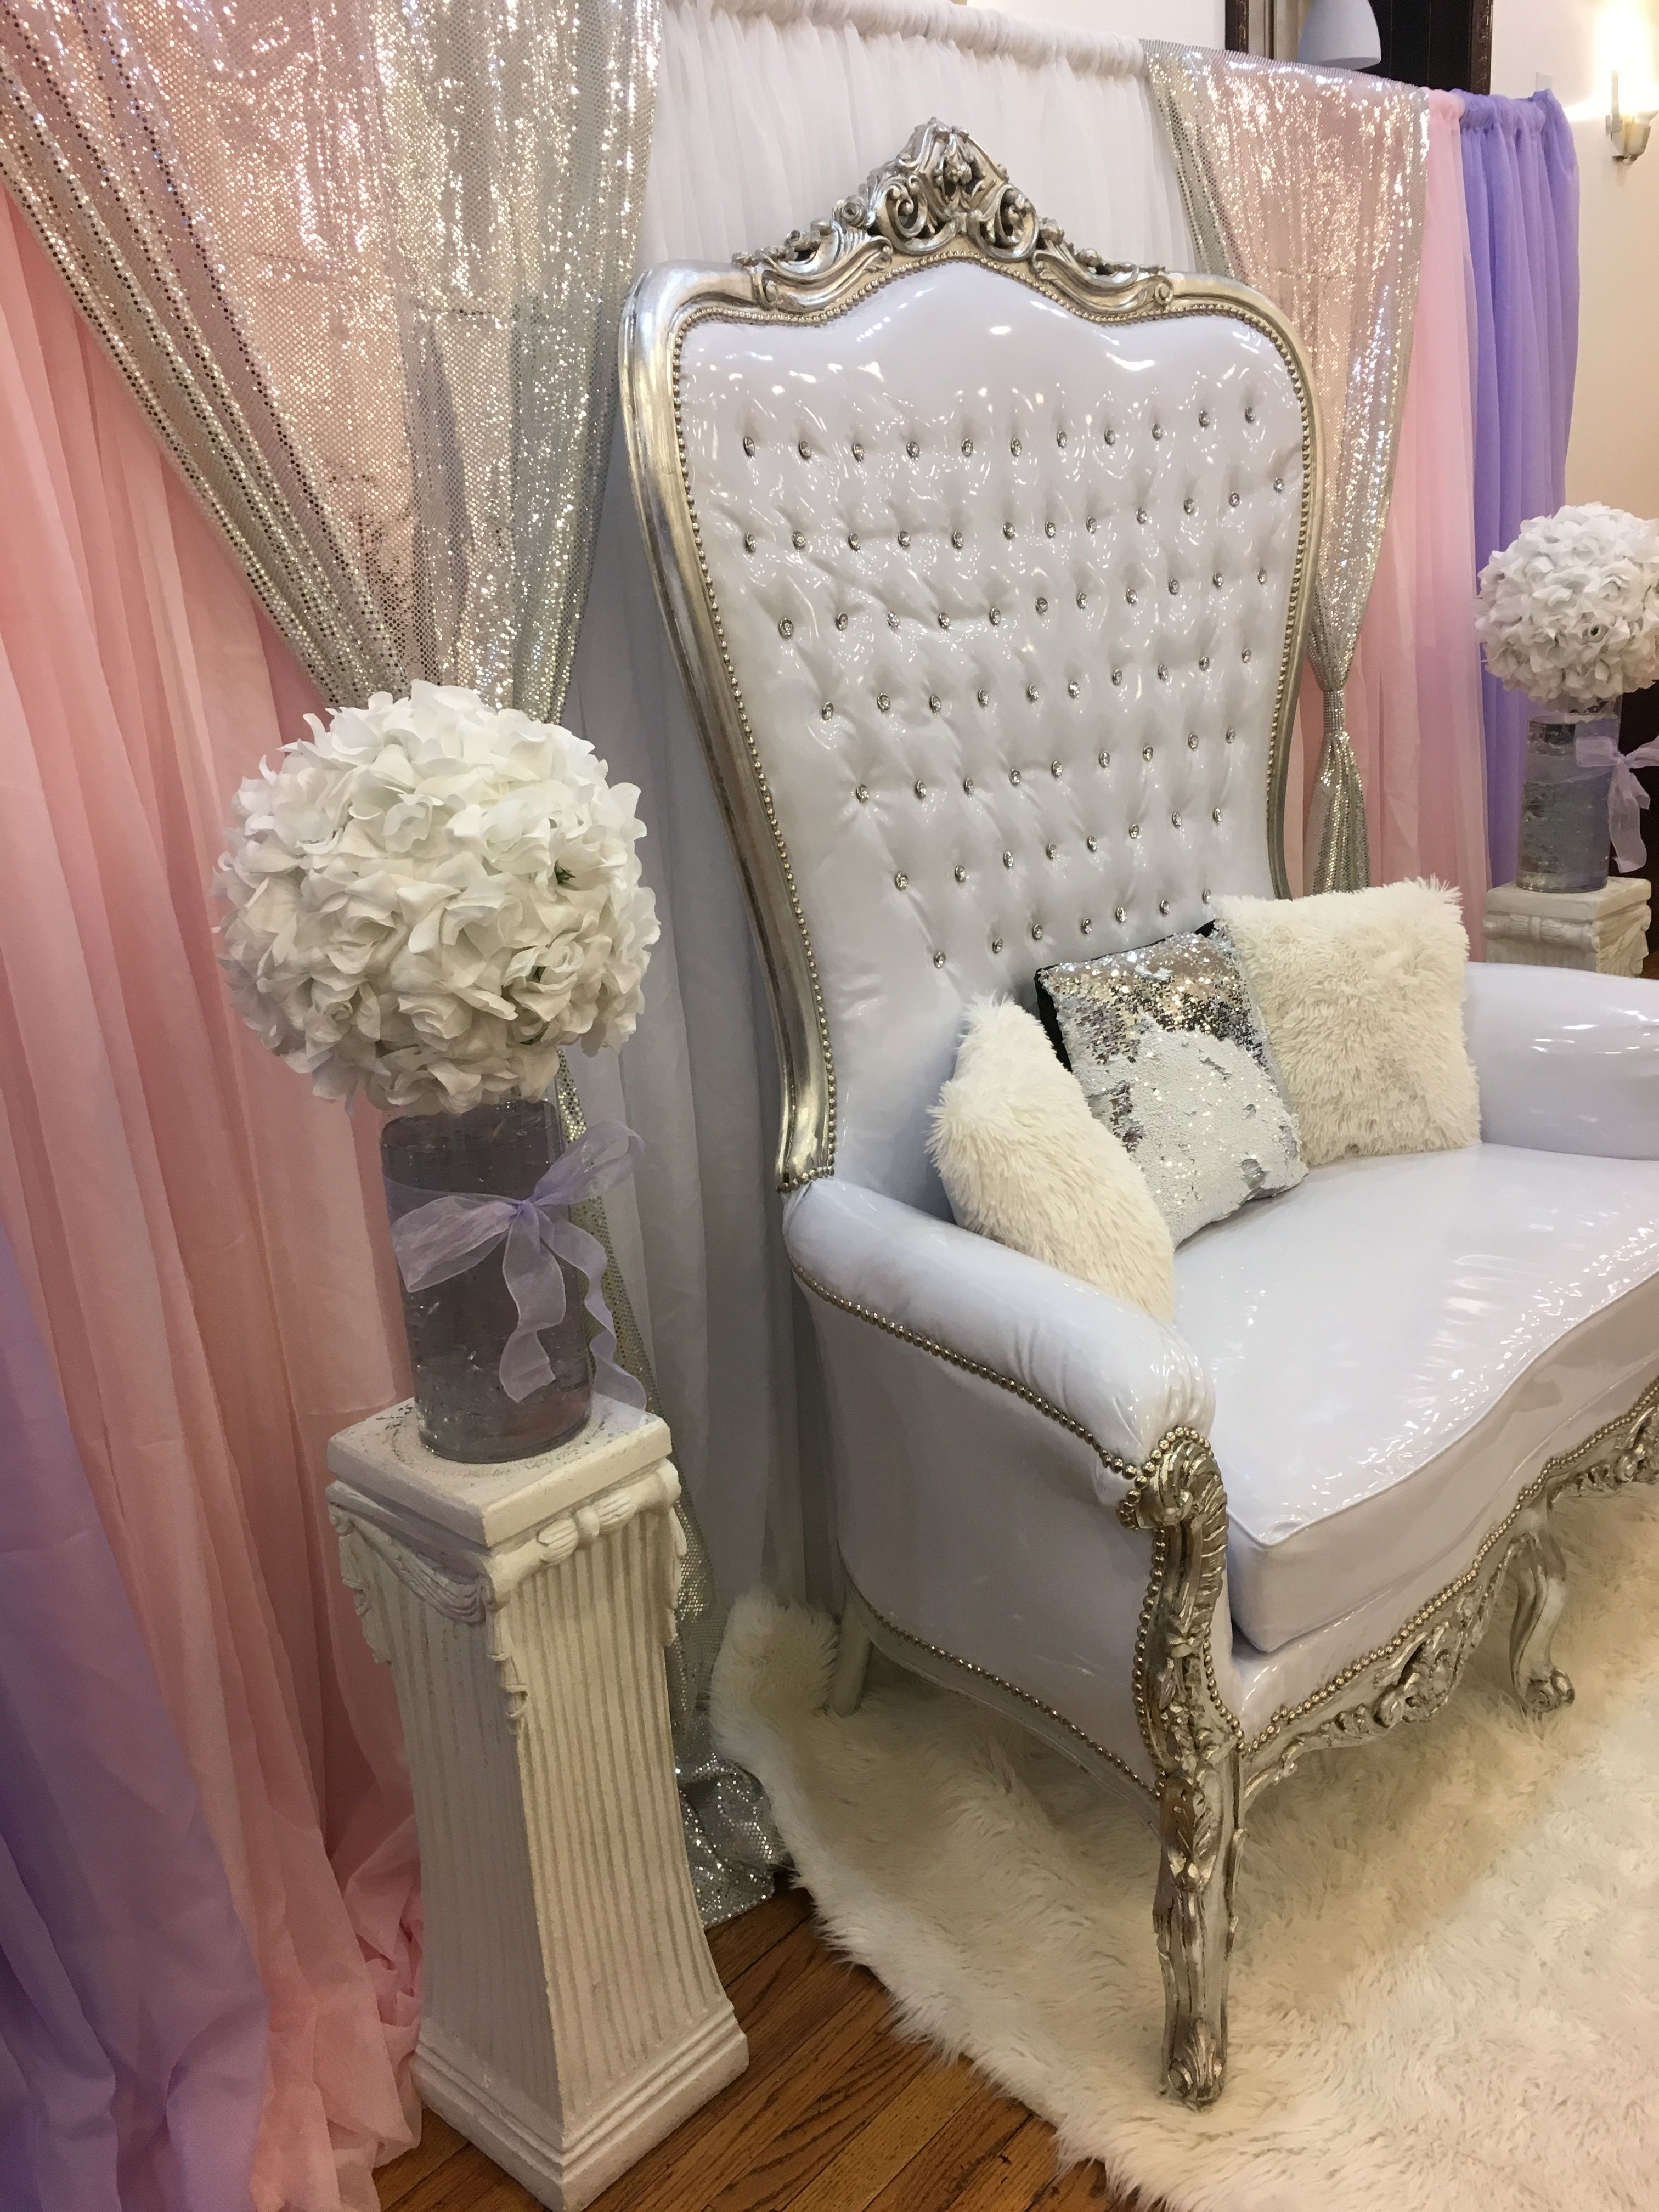 Mommy Area White Rug Throne Chair And Draped Backdrop Pink White